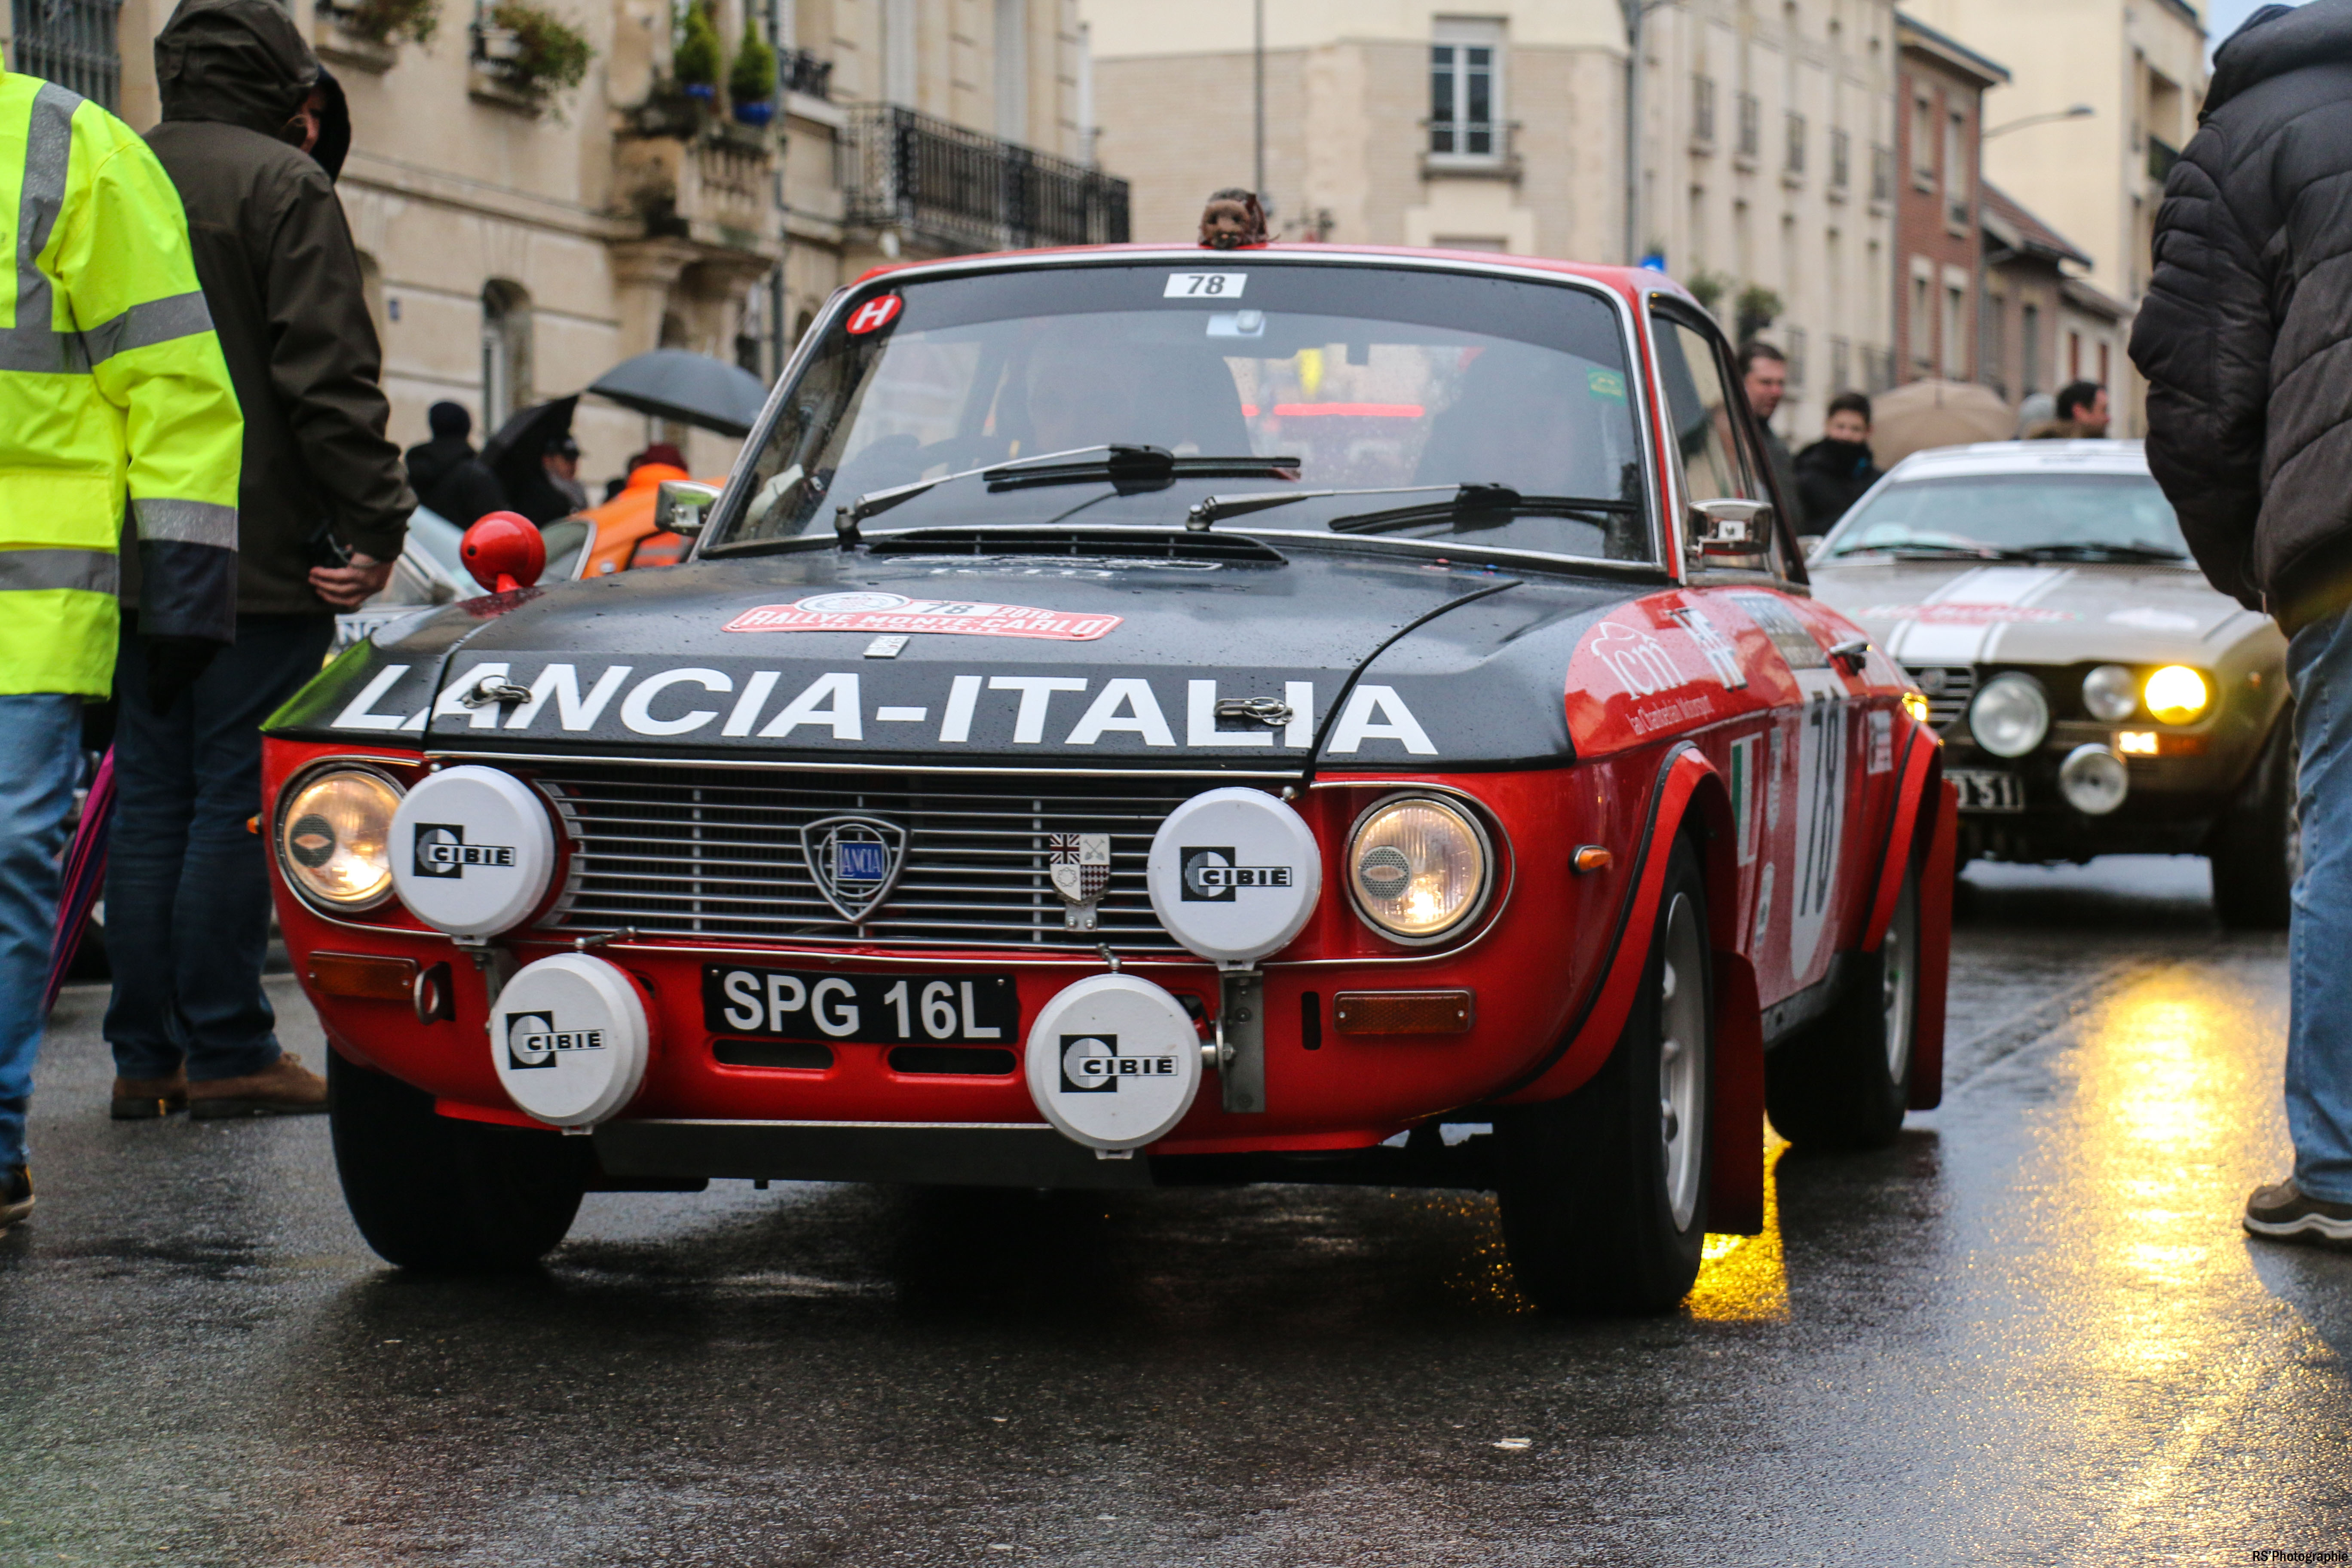 Lancia-Fulvia-1600HF-avant-front-Arnaud Demasier-RSPhotographie